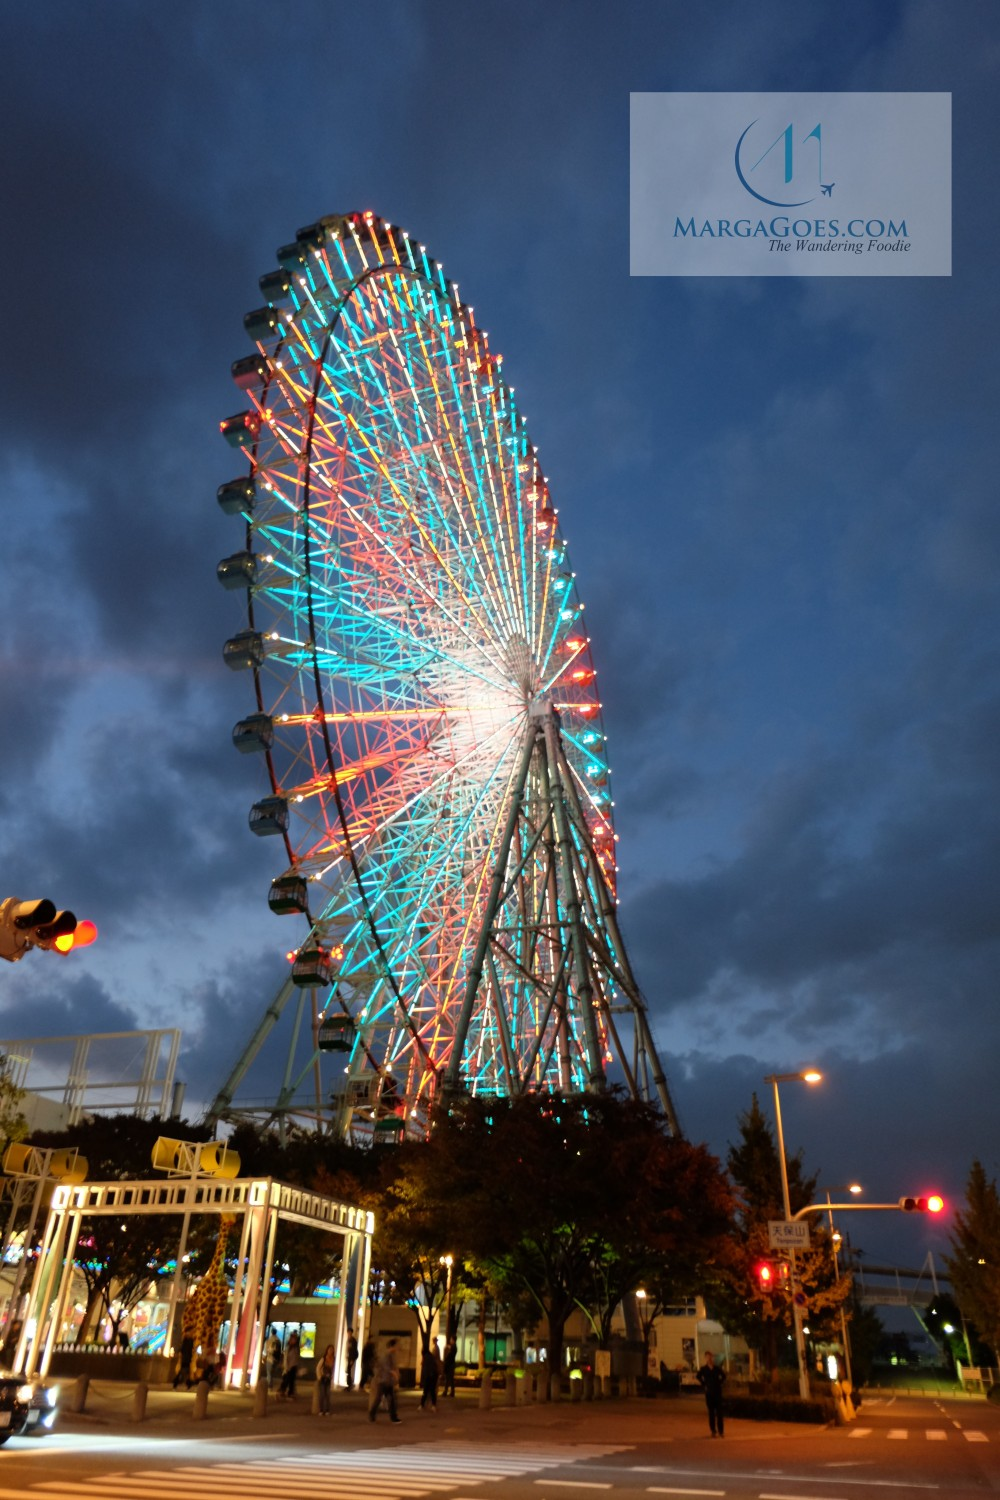 ferris wheel at night.jpg